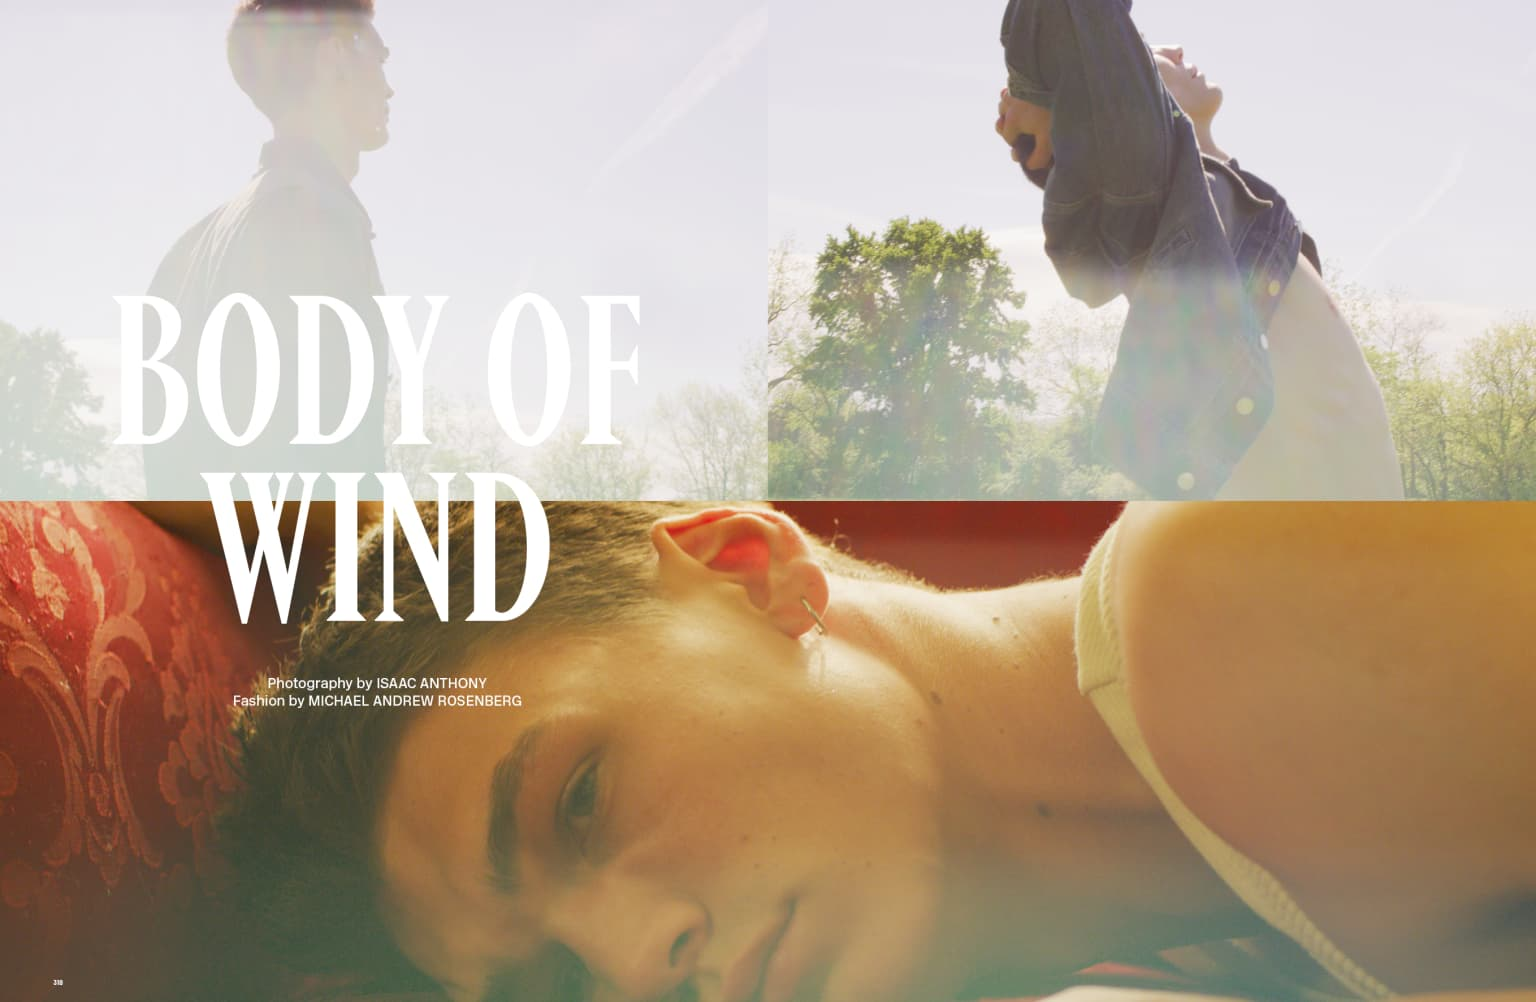 Body of Wind - Behind the Blinds